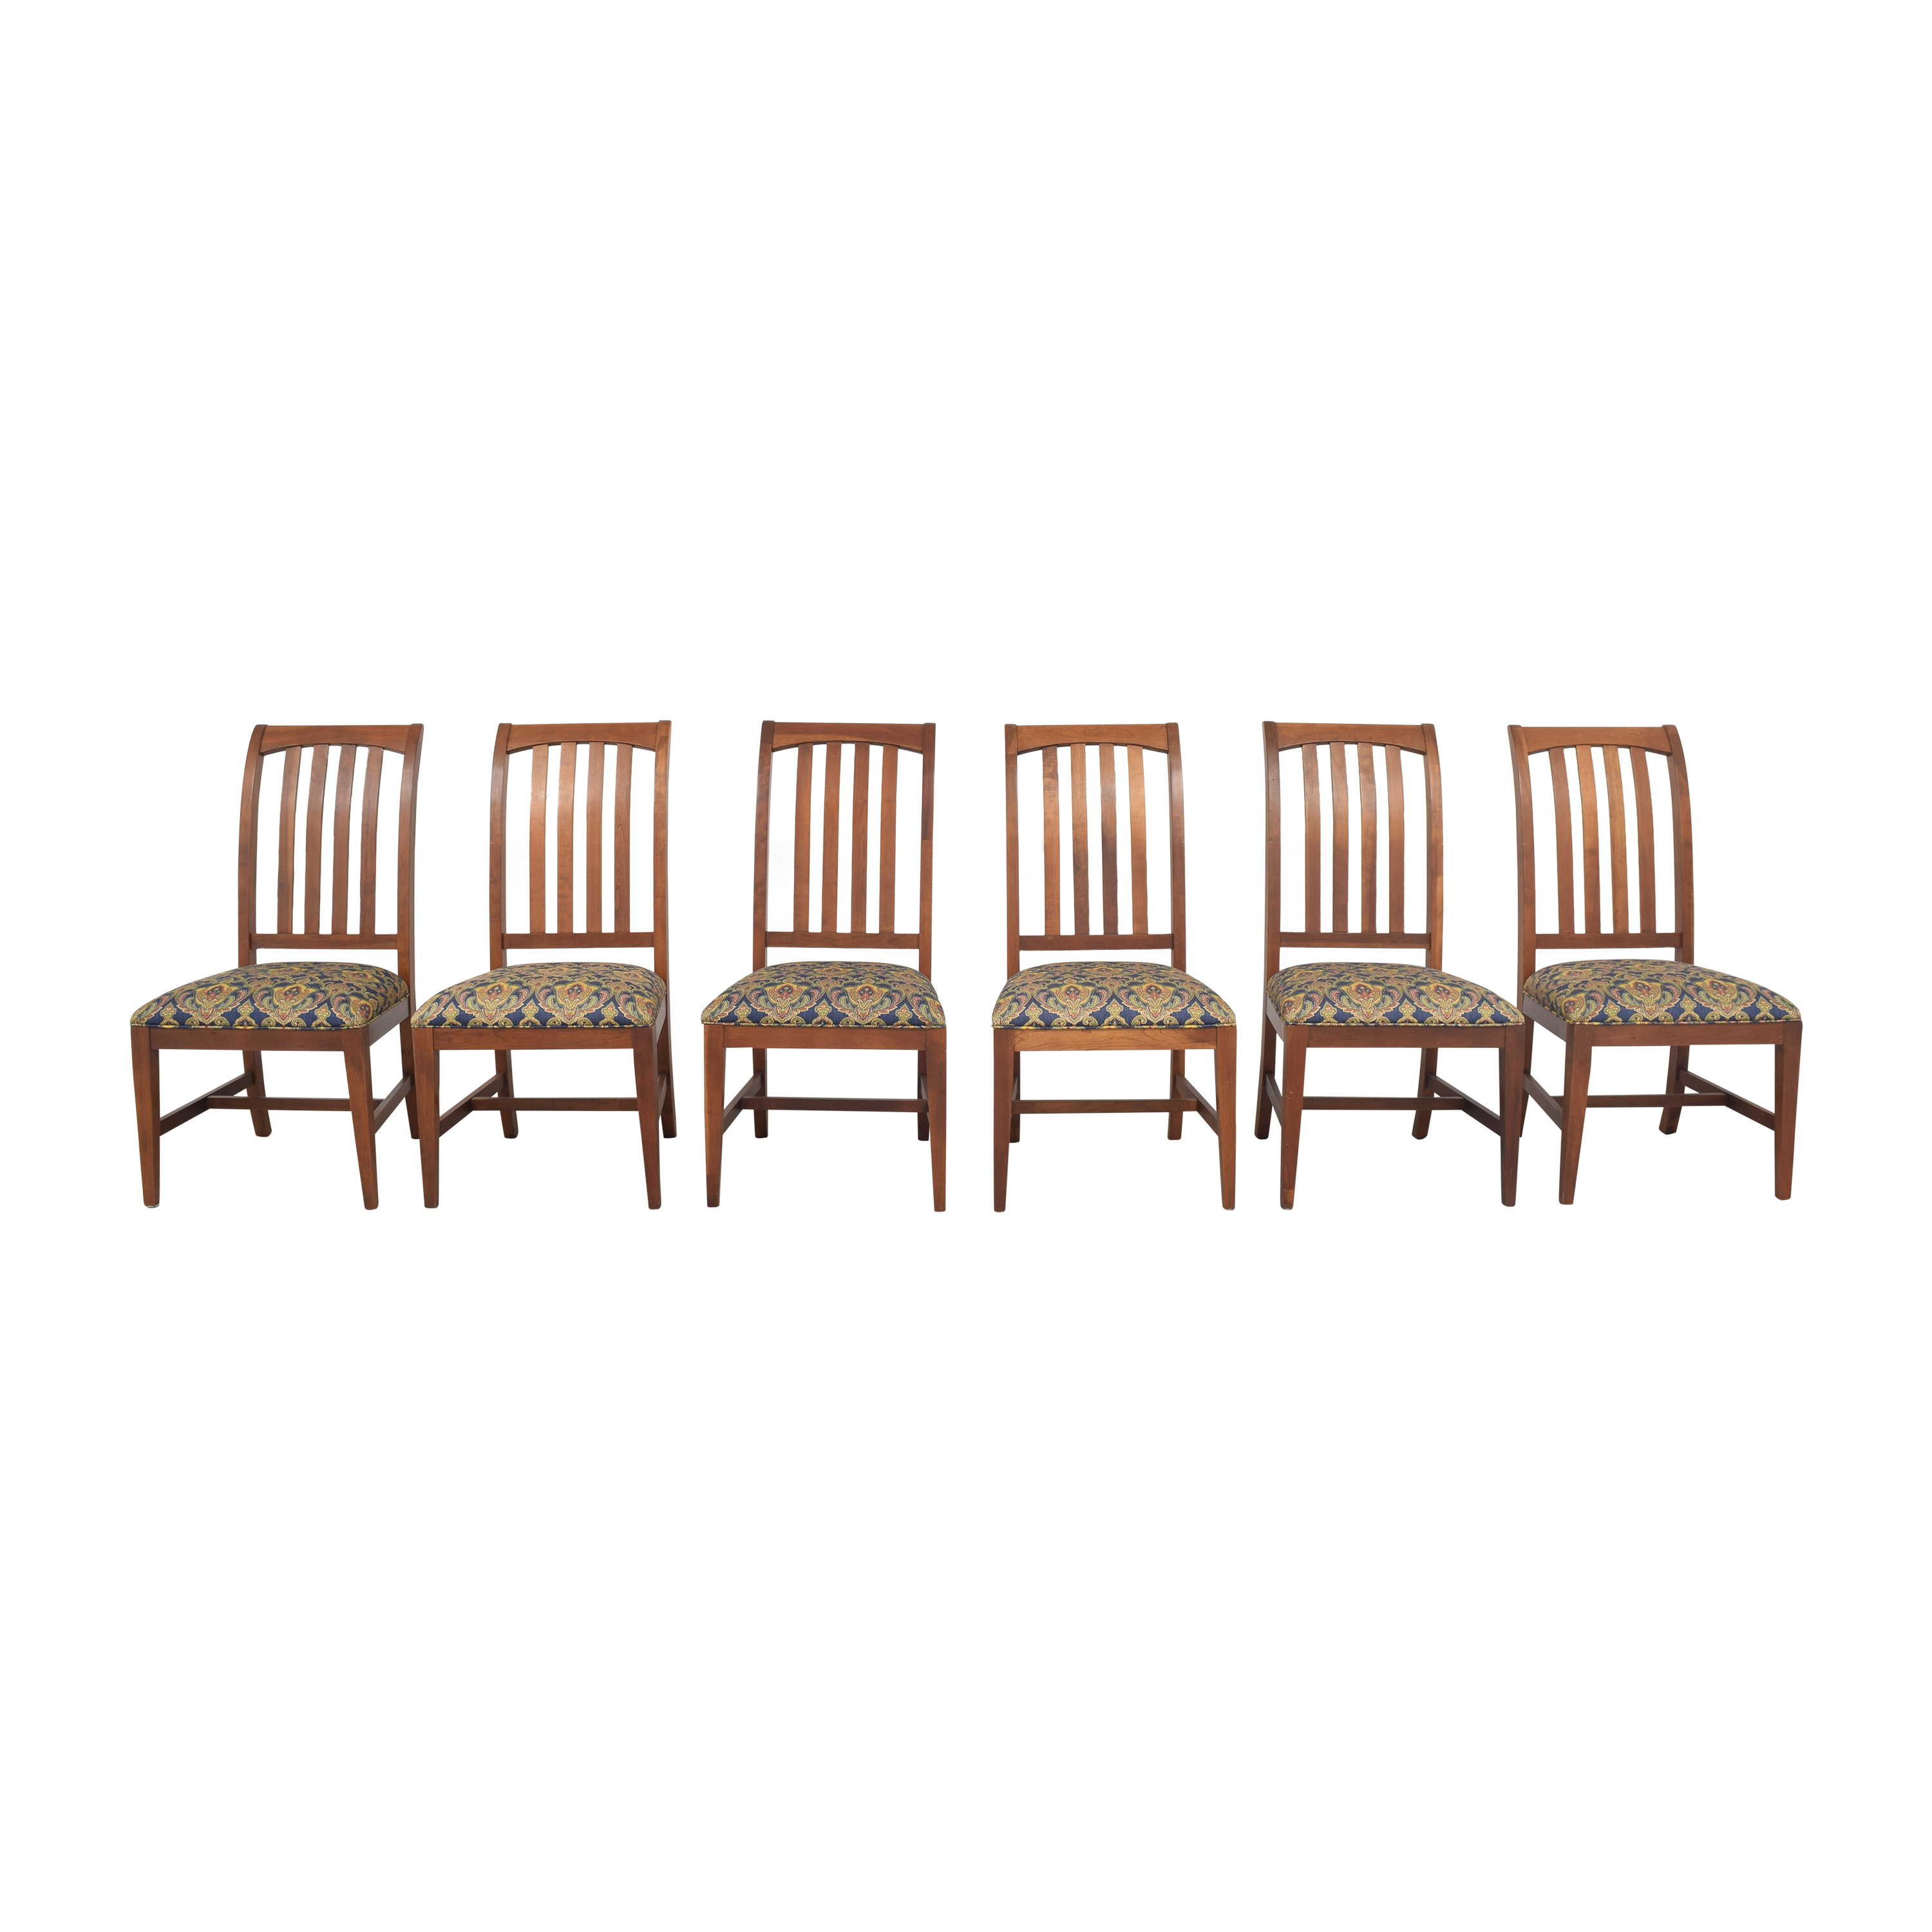 Ethan Allen Ethan Allen American Impressions Dining Side Chairs nj